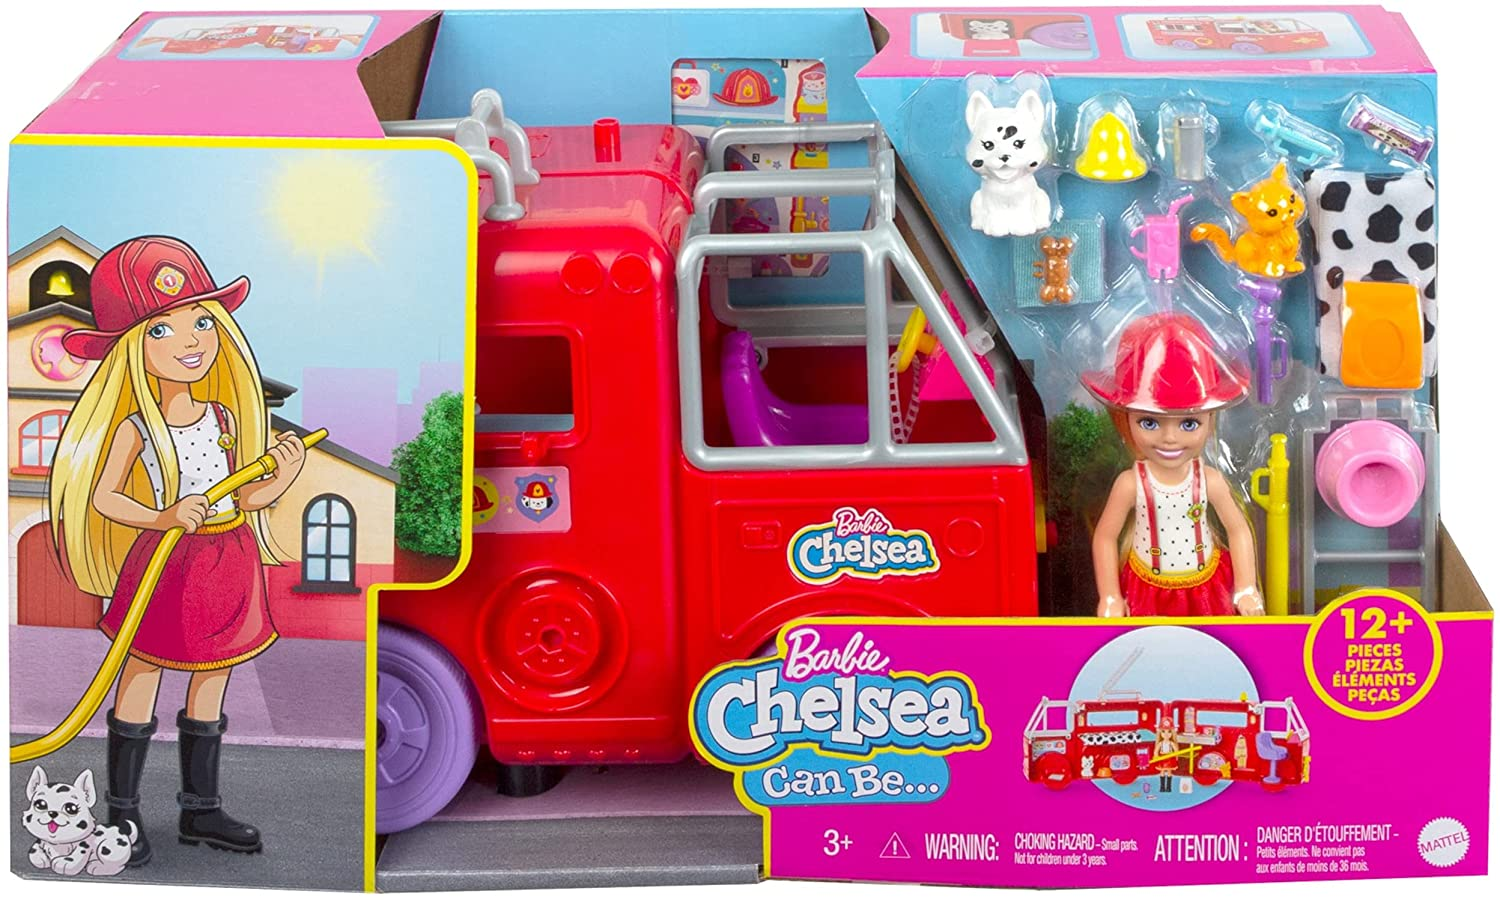 Chelsea doll with her fire engine featuring rolling wheels Playset NRFB